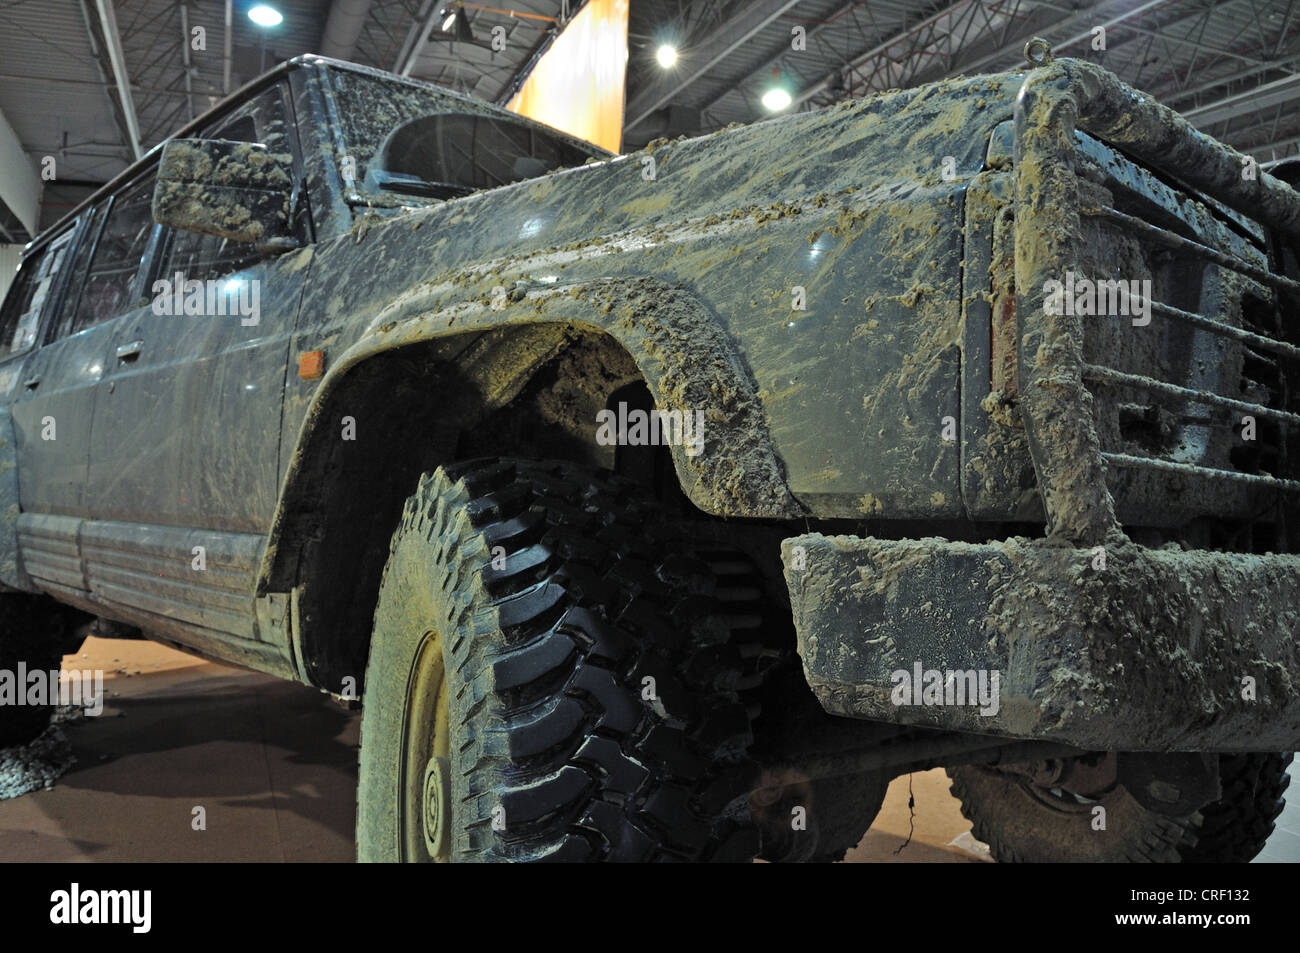 Mud-covered Sport Utility Vehicle - Stock Image